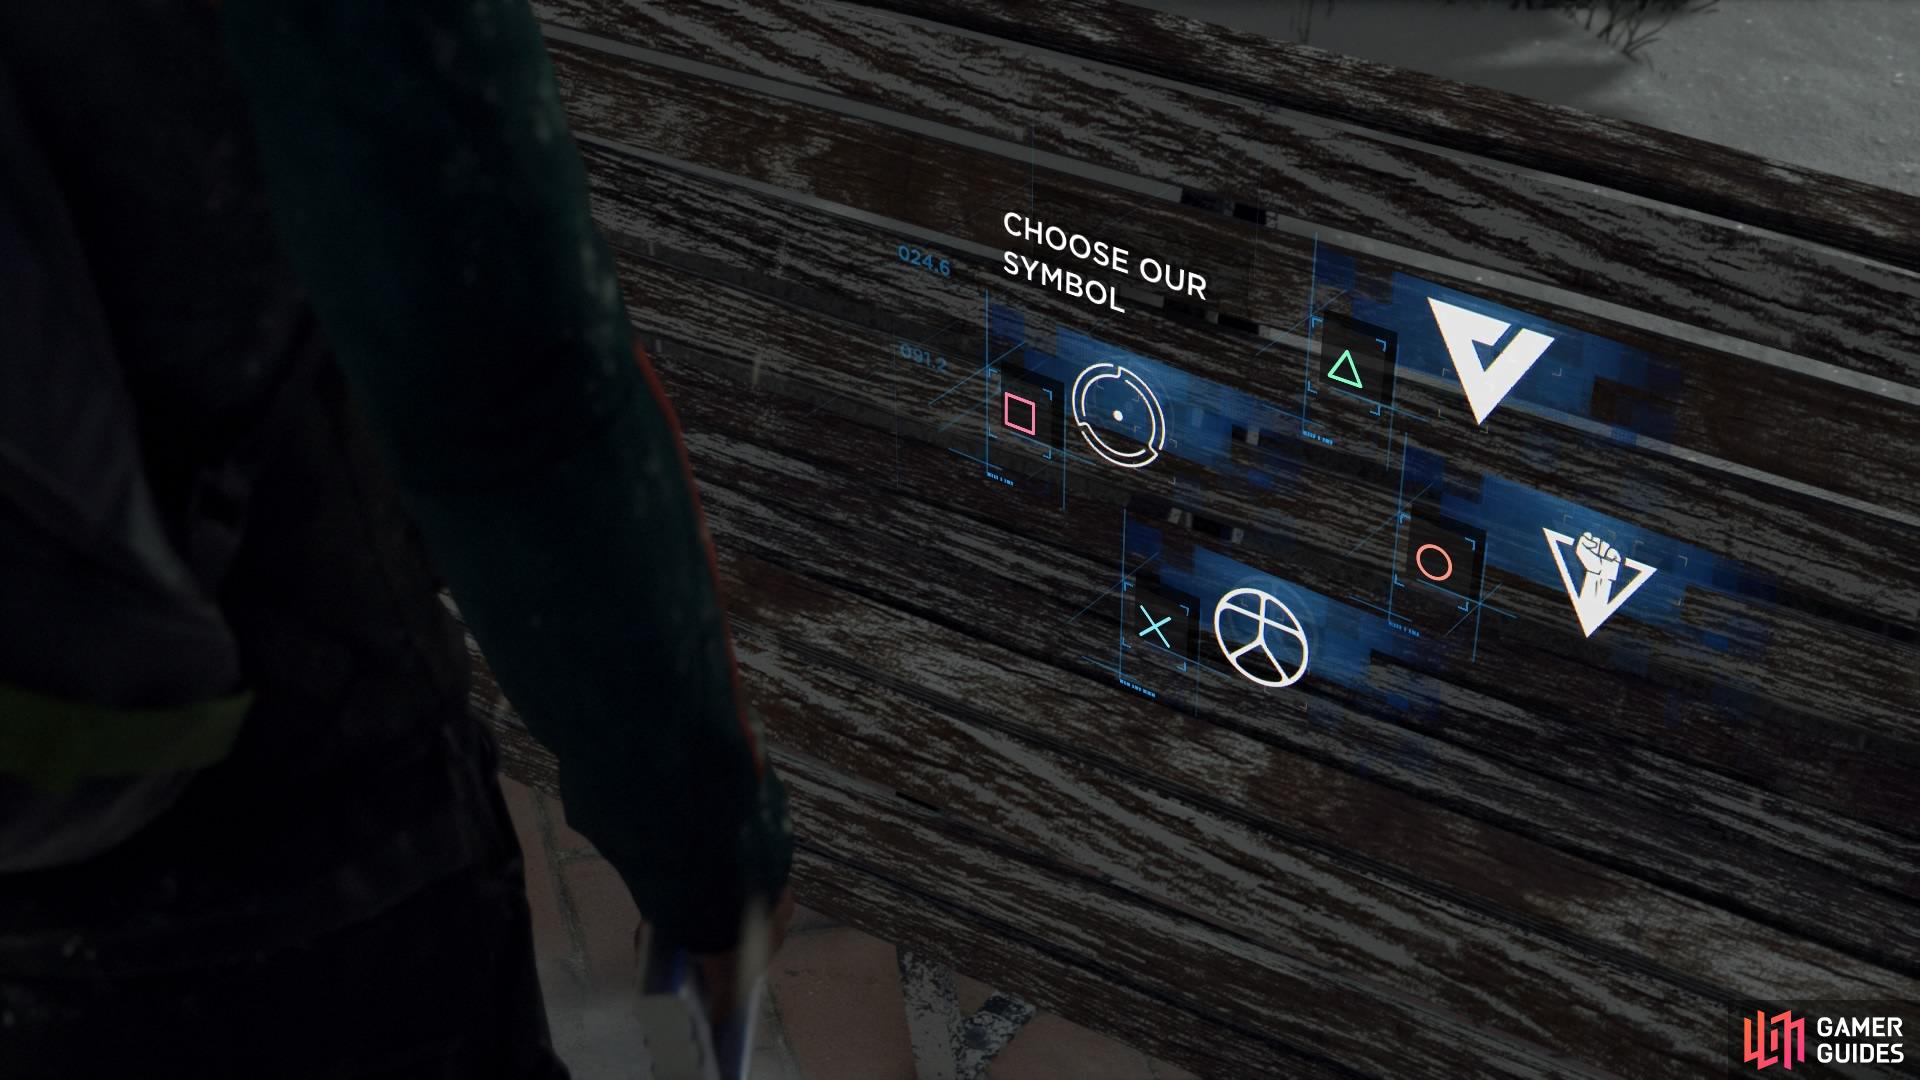 You can tag objects with a symbol of your choice